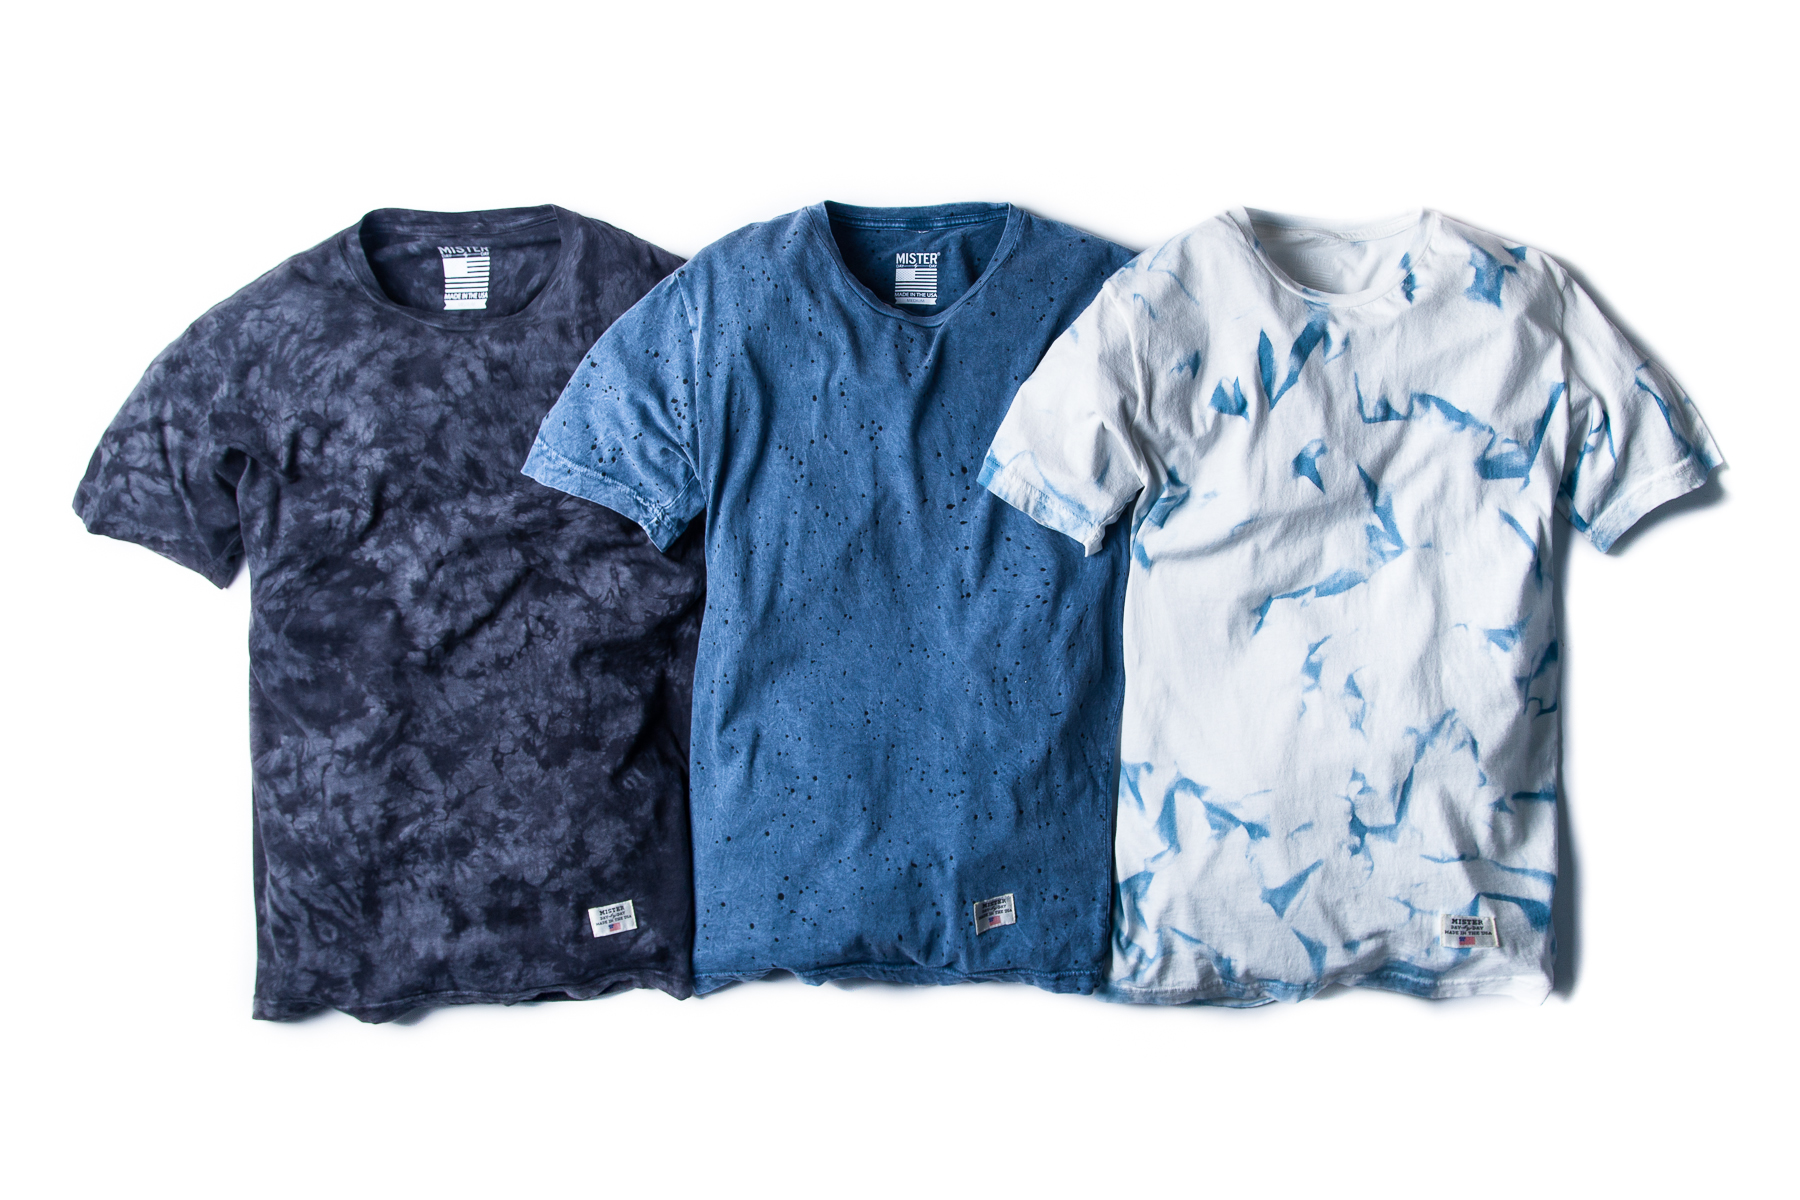 mister 2014 patterned t shirt collection